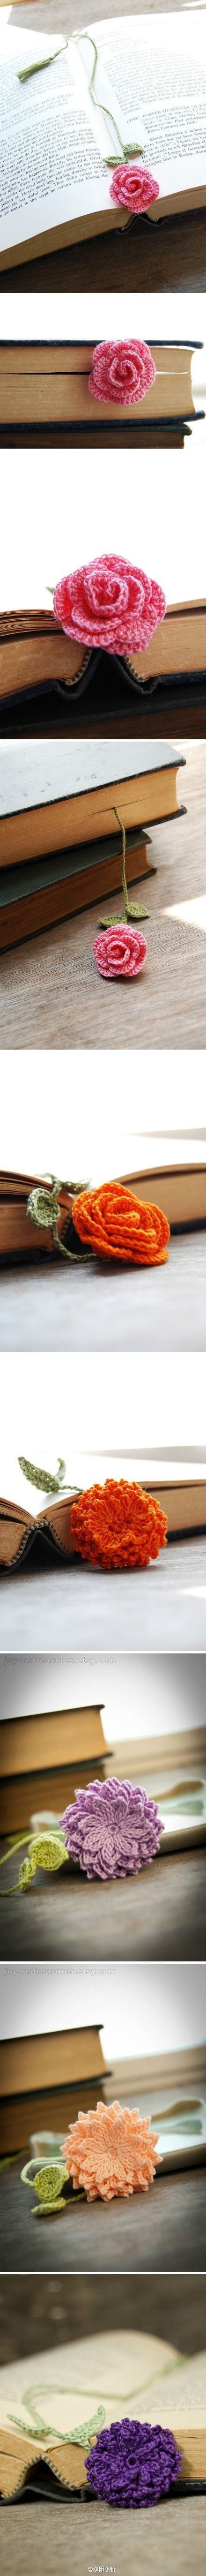 Knitted flowers as bookmarks. Would also make lovely barrettes, brooches, etc. You could crochet the flowers as well, if you don't know how to knit!